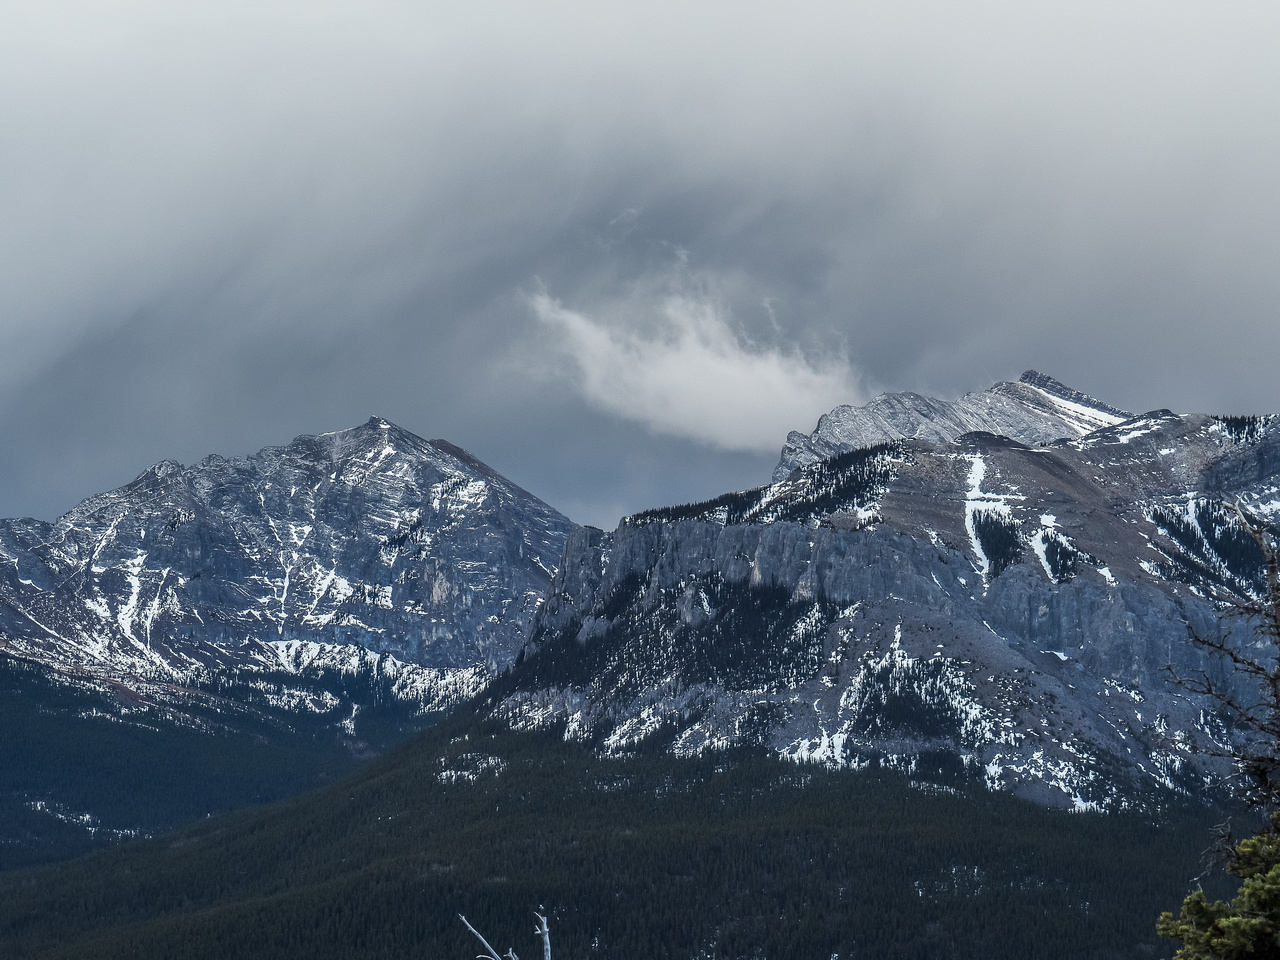 Yamnuska on the left and Wendell on the right.